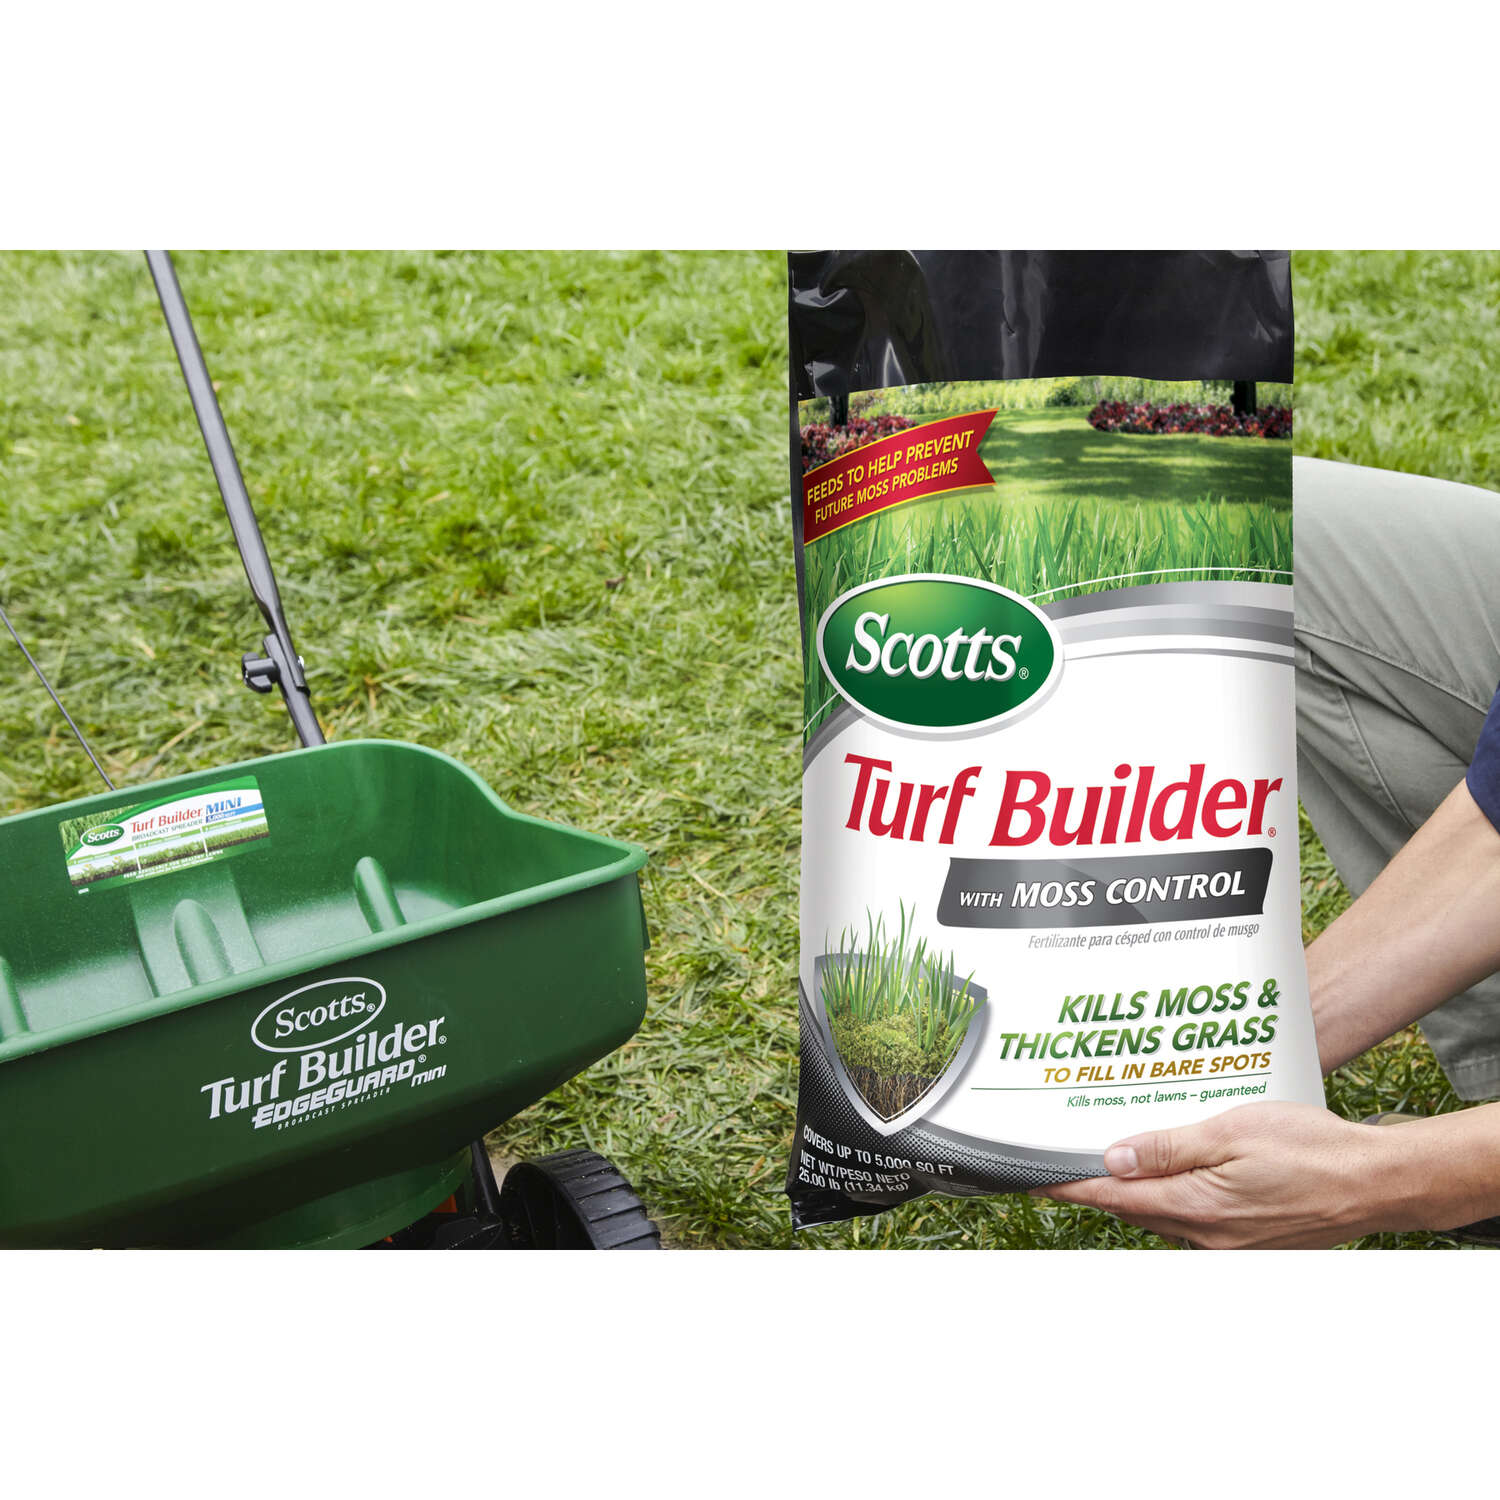 Scotts  Turf Builder  23-0-3  Lawn Fertilizer With Moss Control  For All Grass Types